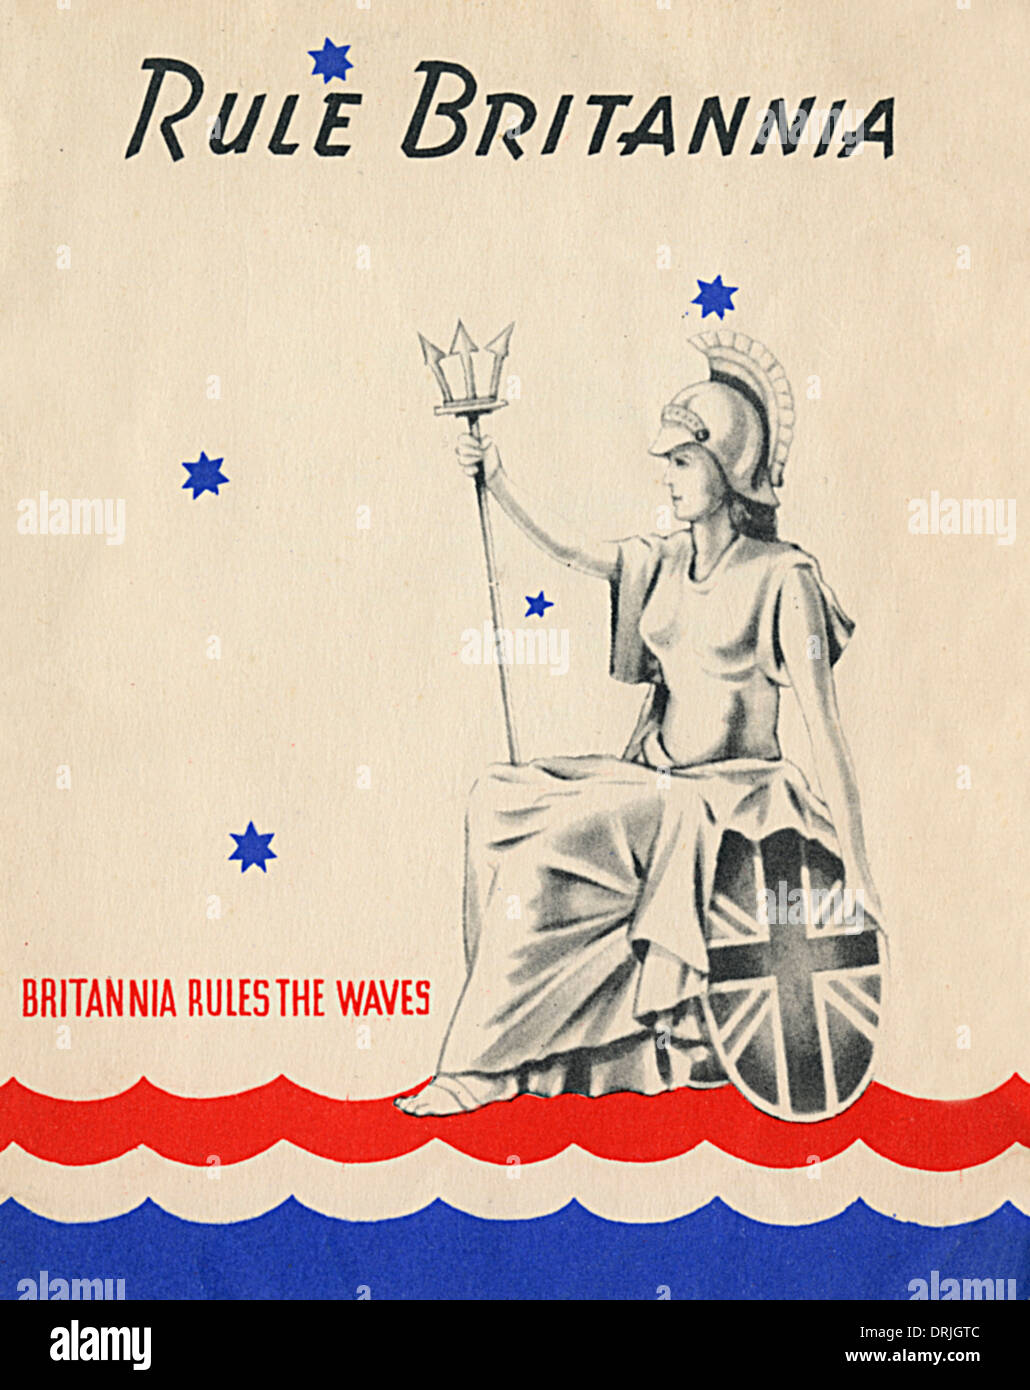 Rule Britannia - Britannia Rules the Waves - Stock Image